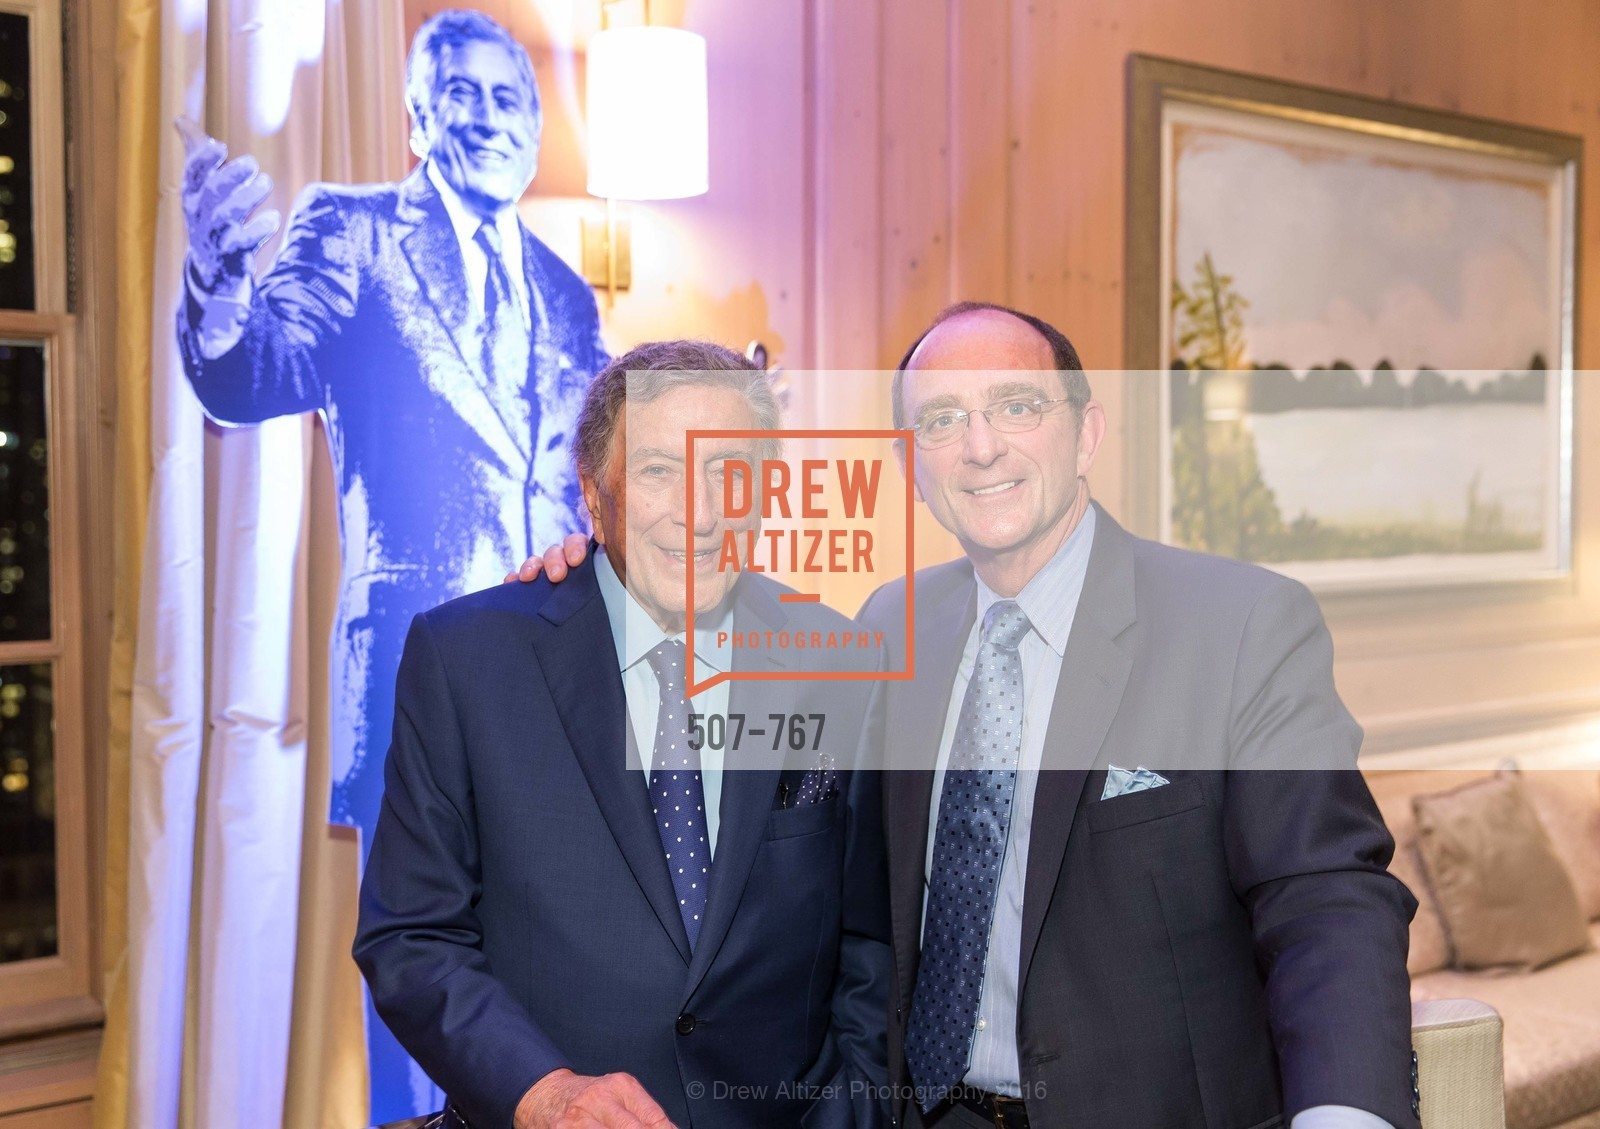 Tony Bennett, Tom Klein, A Special Reception with Tony Bennett, The Fairmont, San Francisco, The Penthouse Suite, January 26th, 2016,Drew Altizer, Drew Altizer Photography, full-service event agency, private events, San Francisco photographer, photographer California